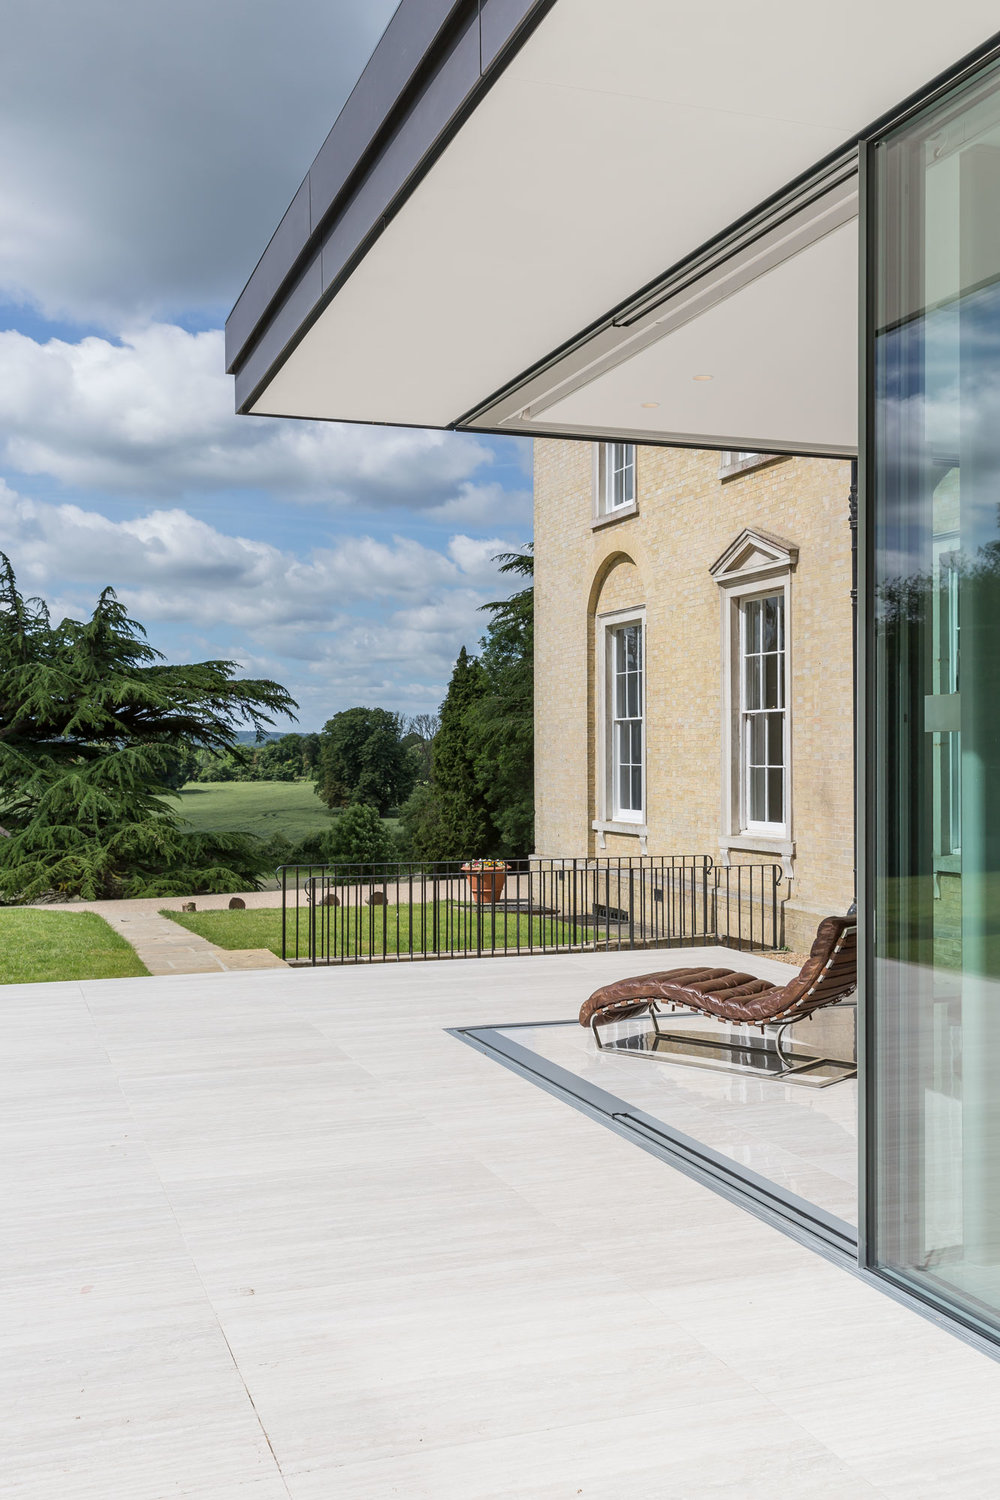 Award winning Broughton House - Grade II star listed refurbishment & extension